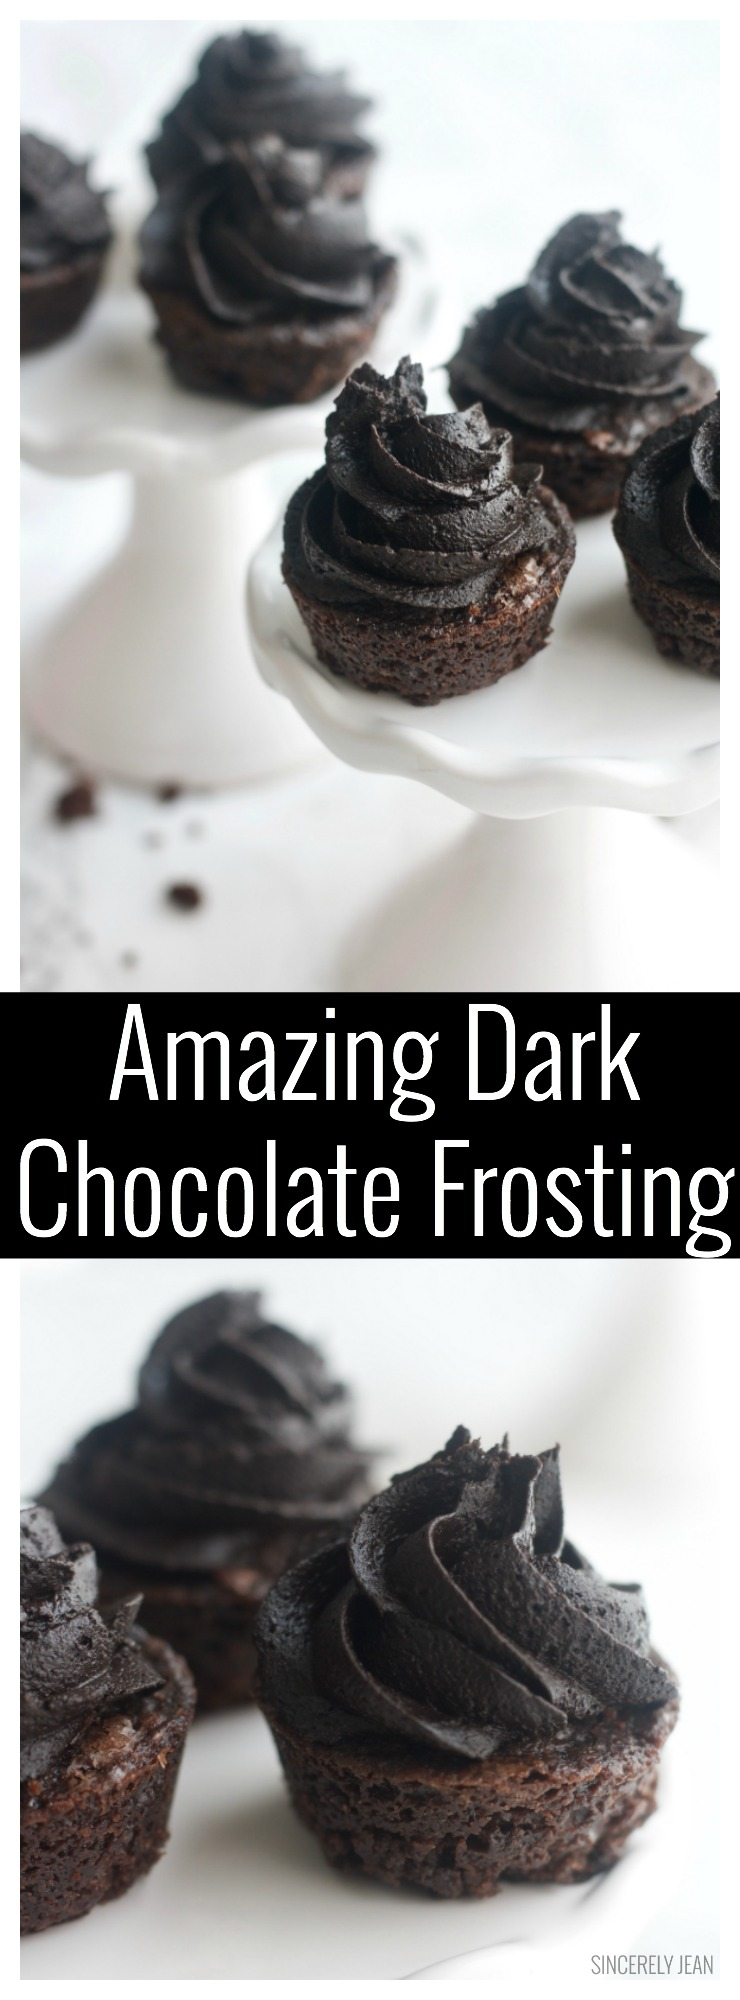 Amazing Dark Chocolate Frosting - best - recipe - homemade - rich - perfect - dessert - cake - frosting